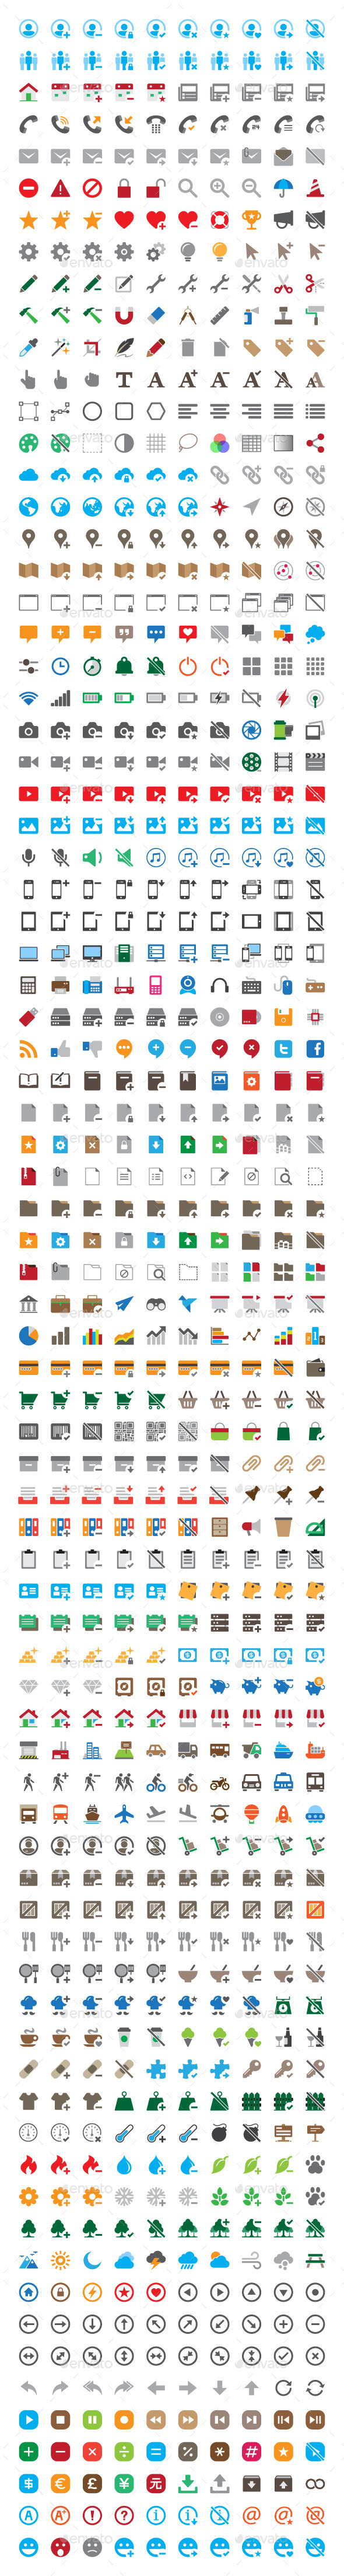 GraphicRiver 800 Round Corner Color Flat Vector Icons 11540062